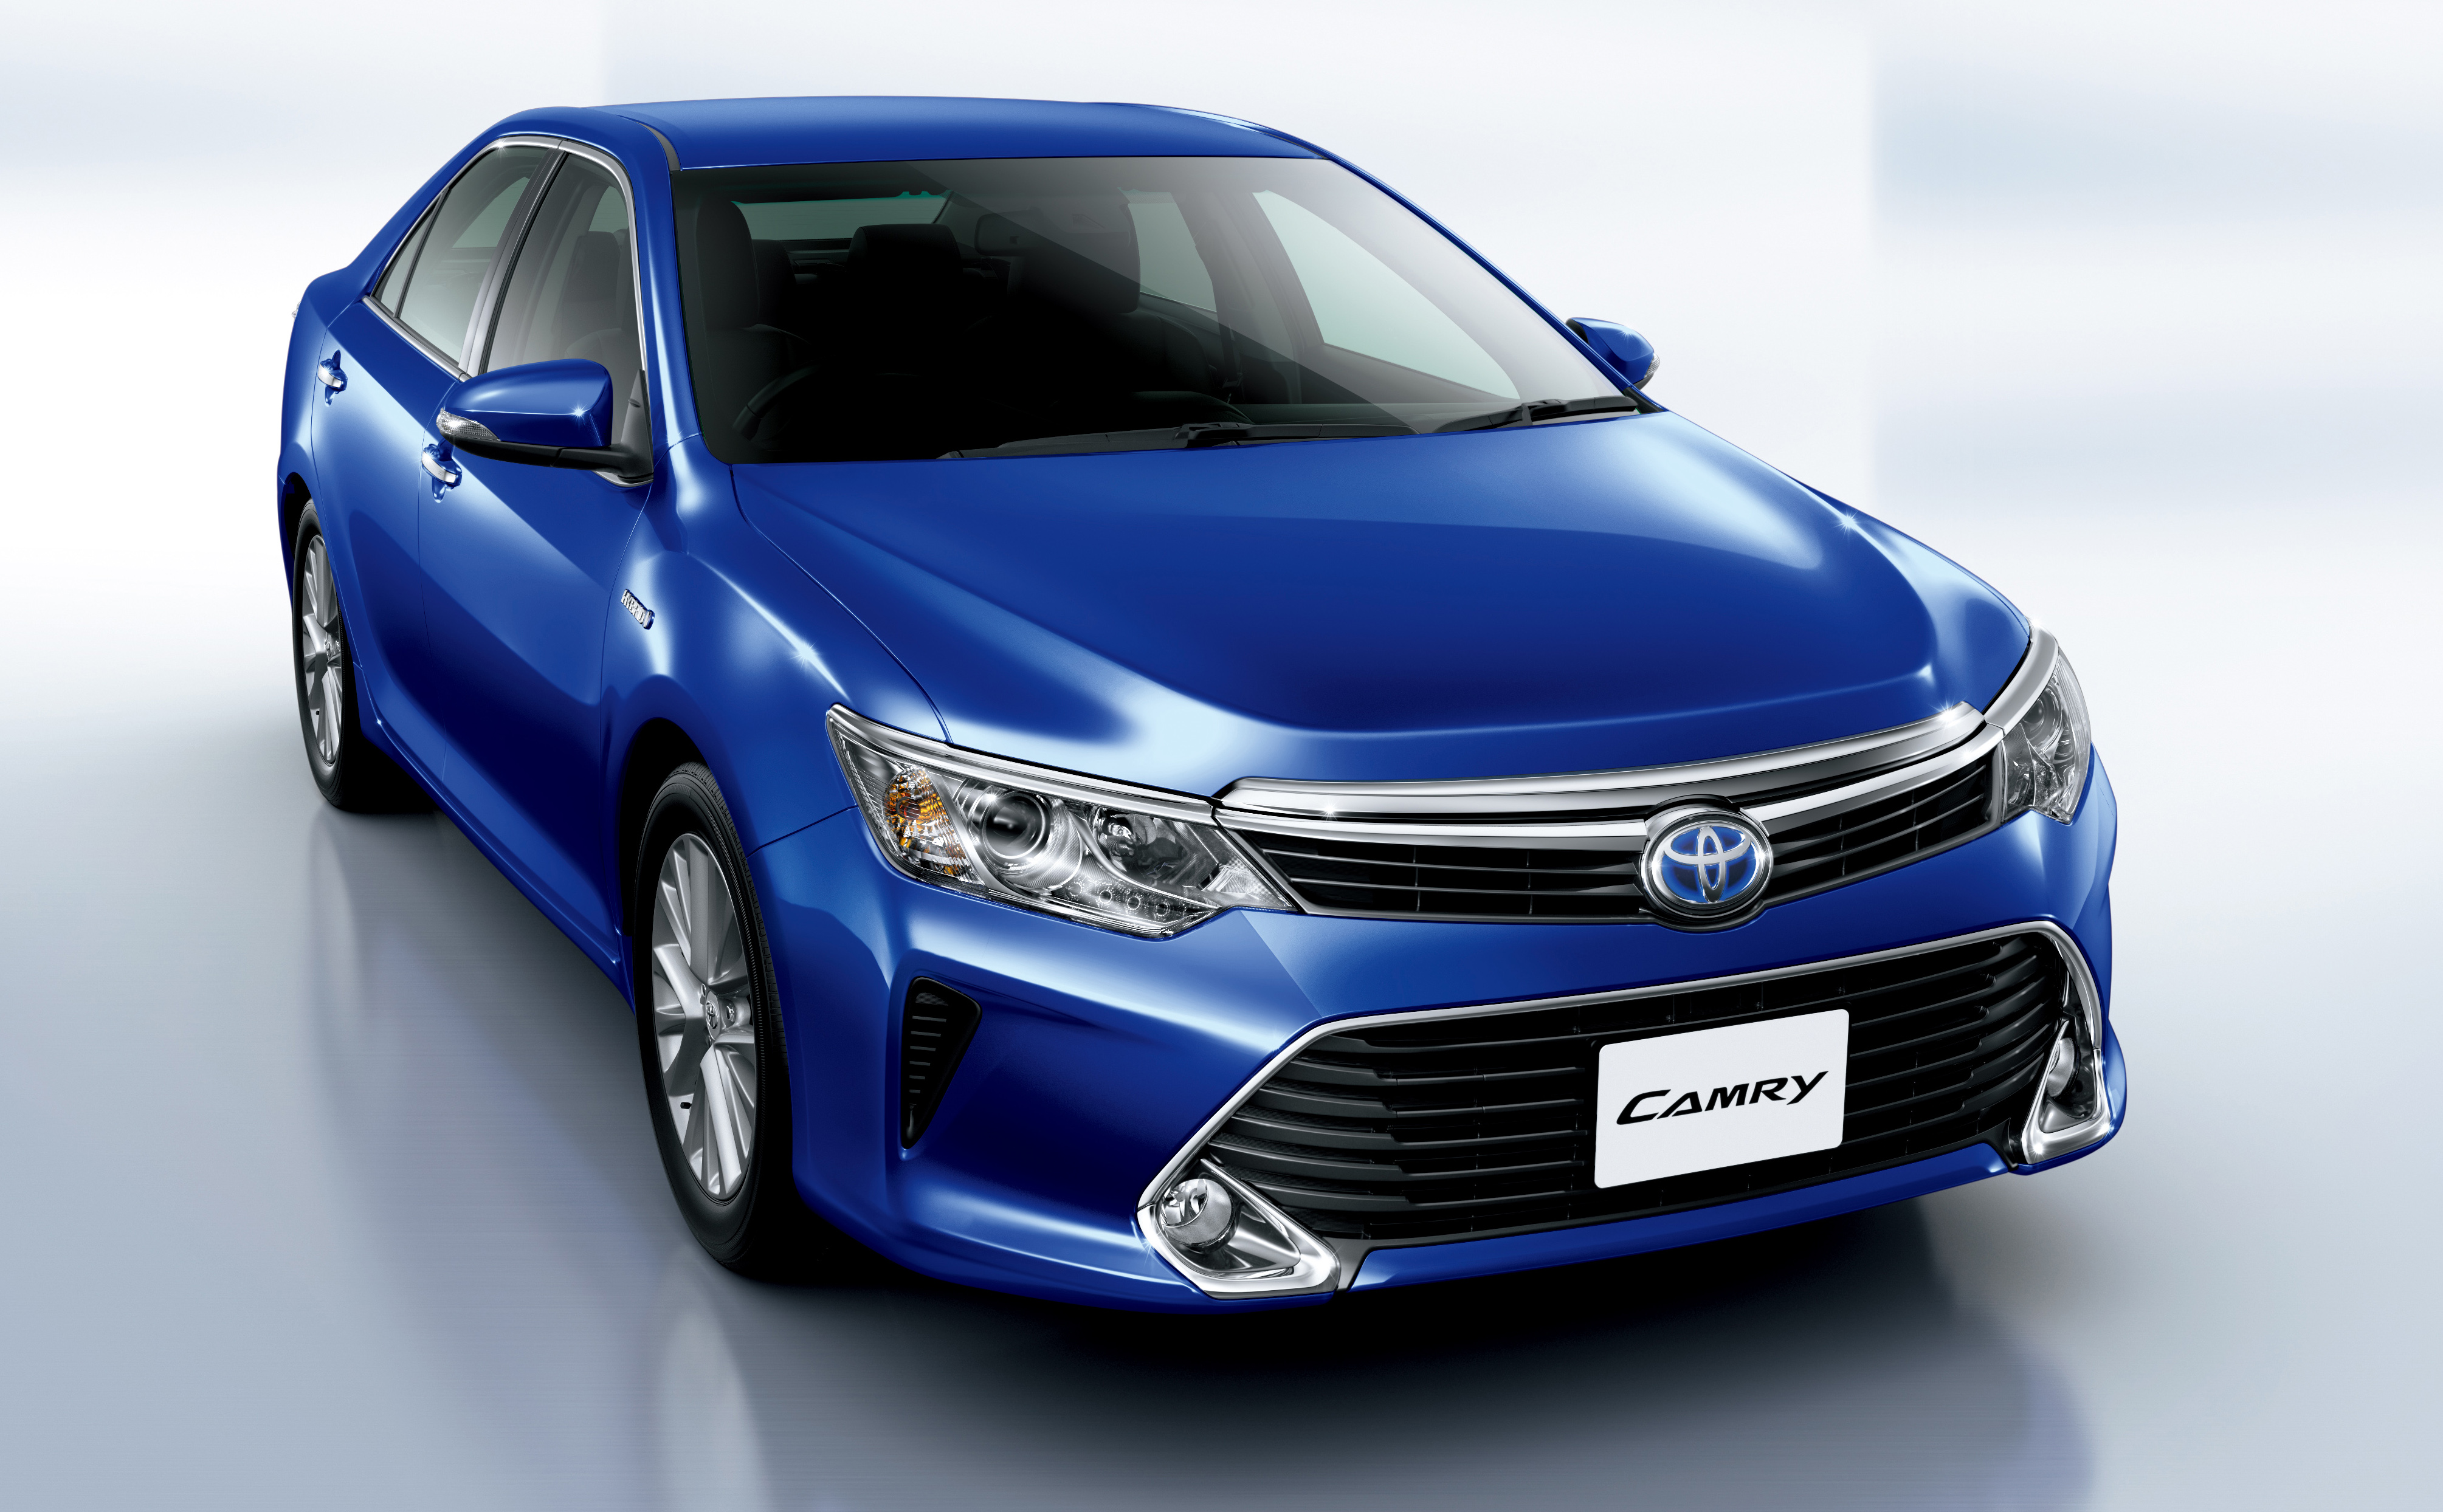 japan toyota and the hybrid car Further, japanese hybrid cars are eco friendly, as these cars burn less fuel and japanese automobile makers like toyota japan, nissan, mitsubishi, and honda japan etc are more conscious of environmental pollution and build cleaner cars.